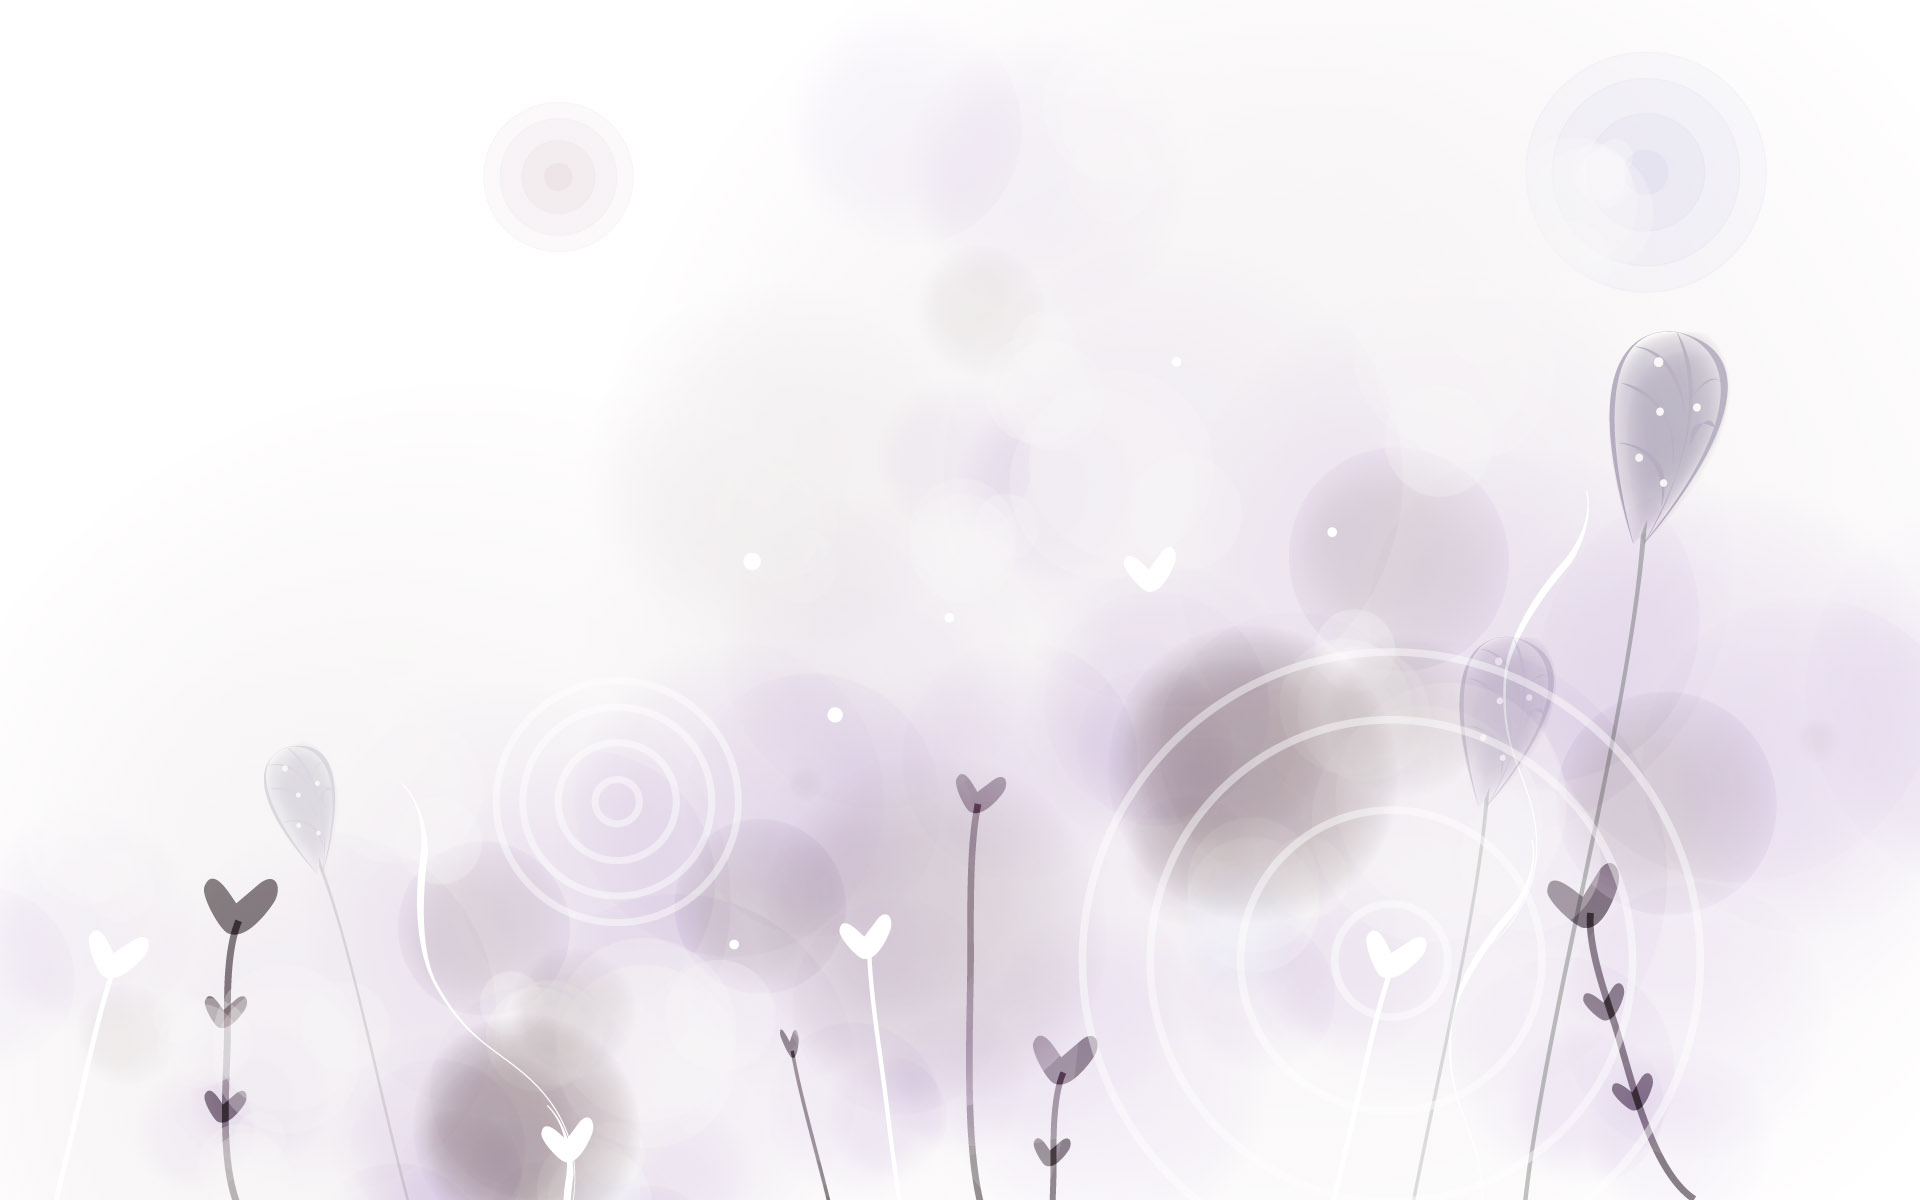 Background color 16923